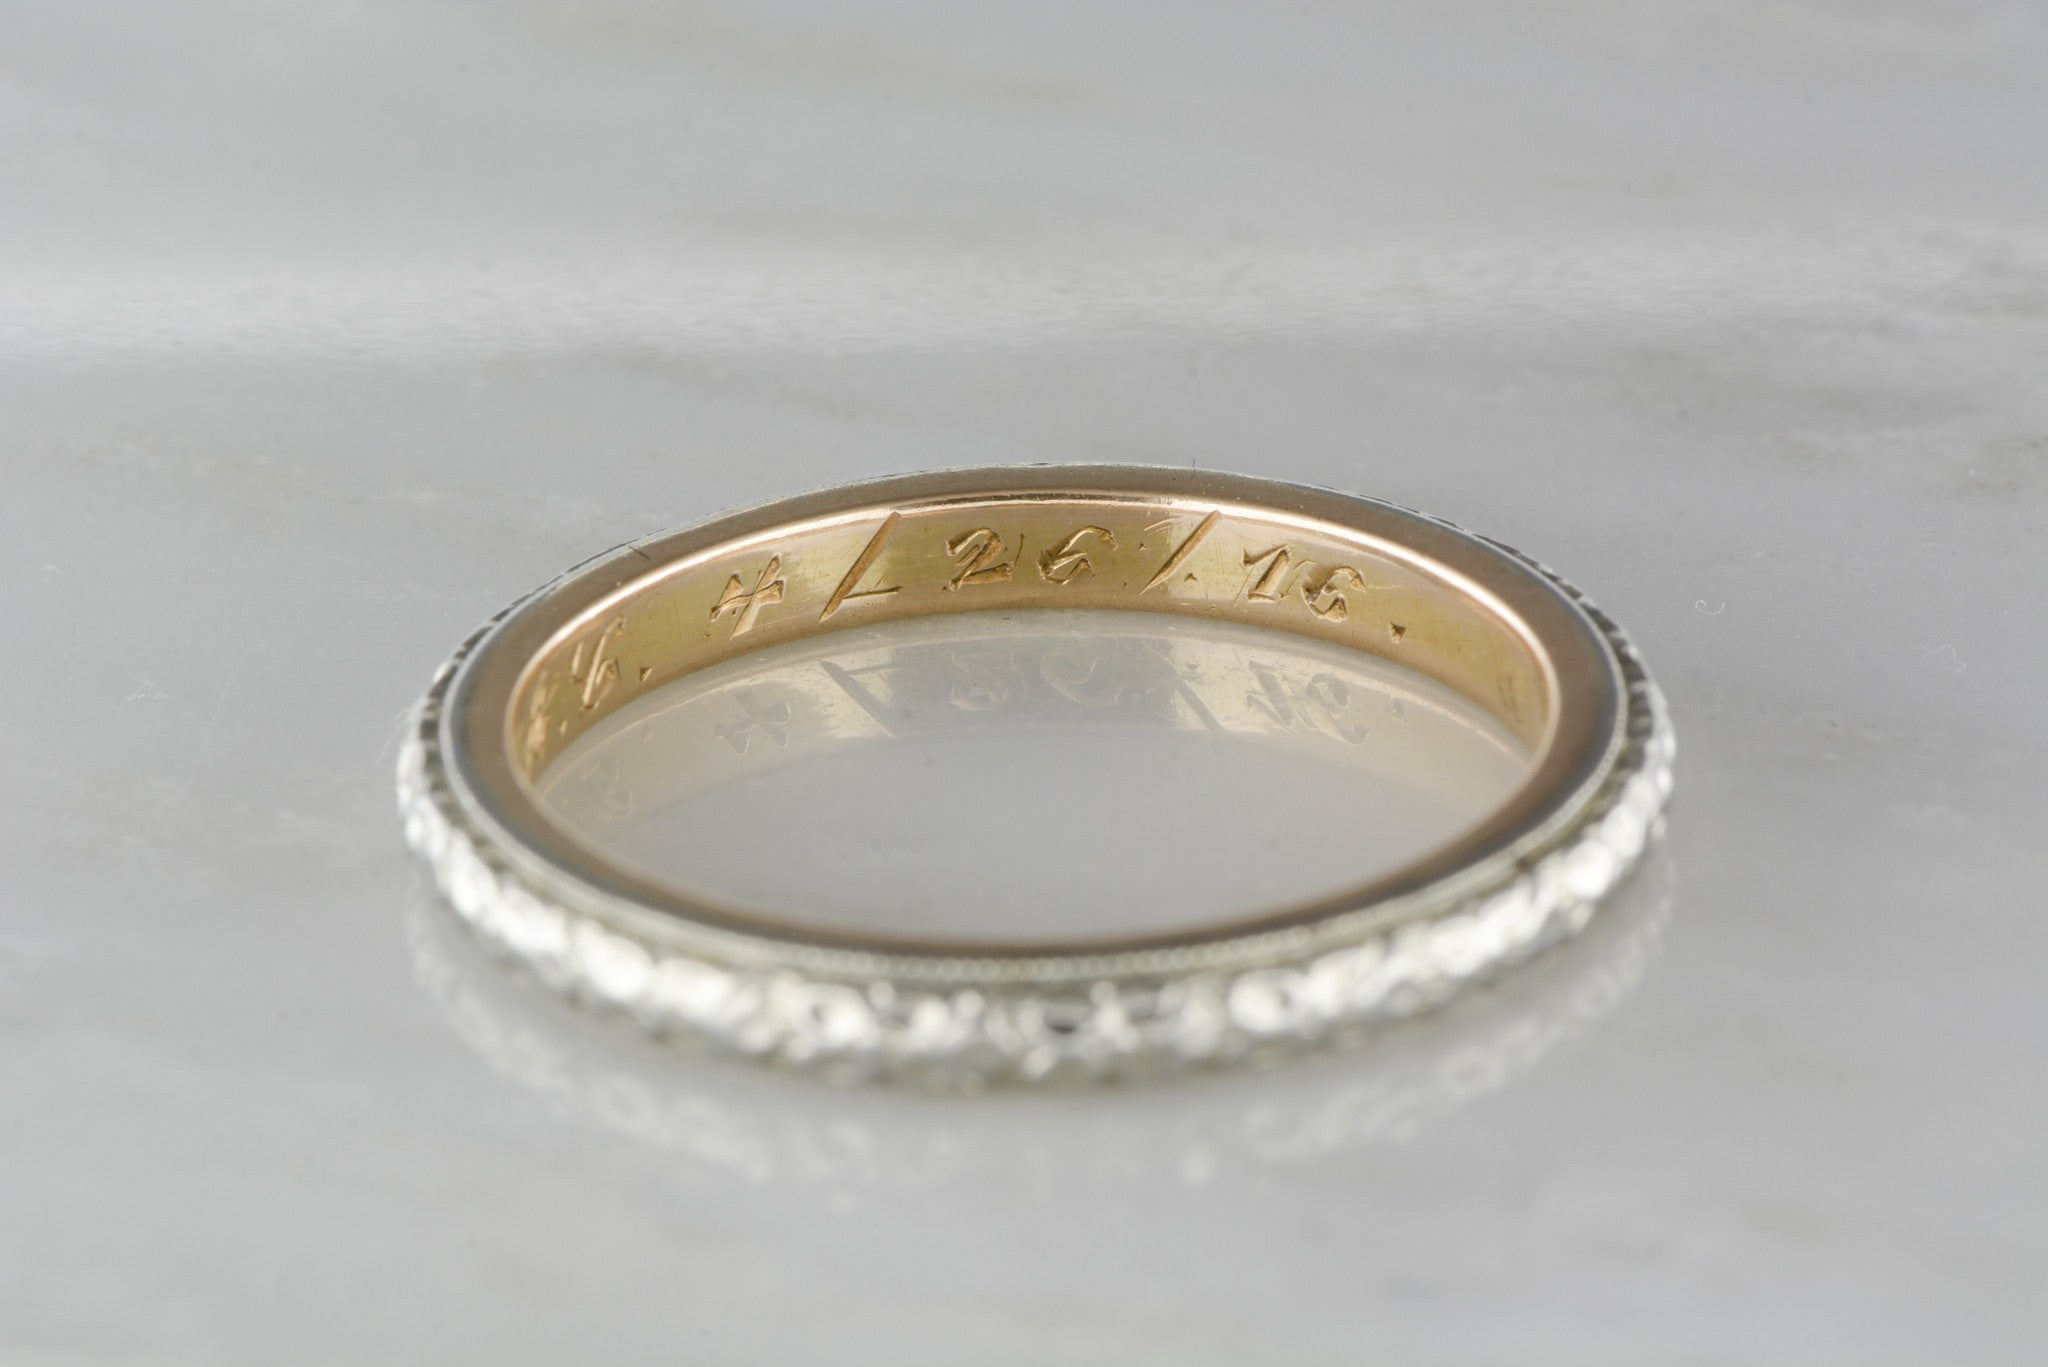 Antique Two Tone Men s Victorian 14K Gold Wedding Band Engraved